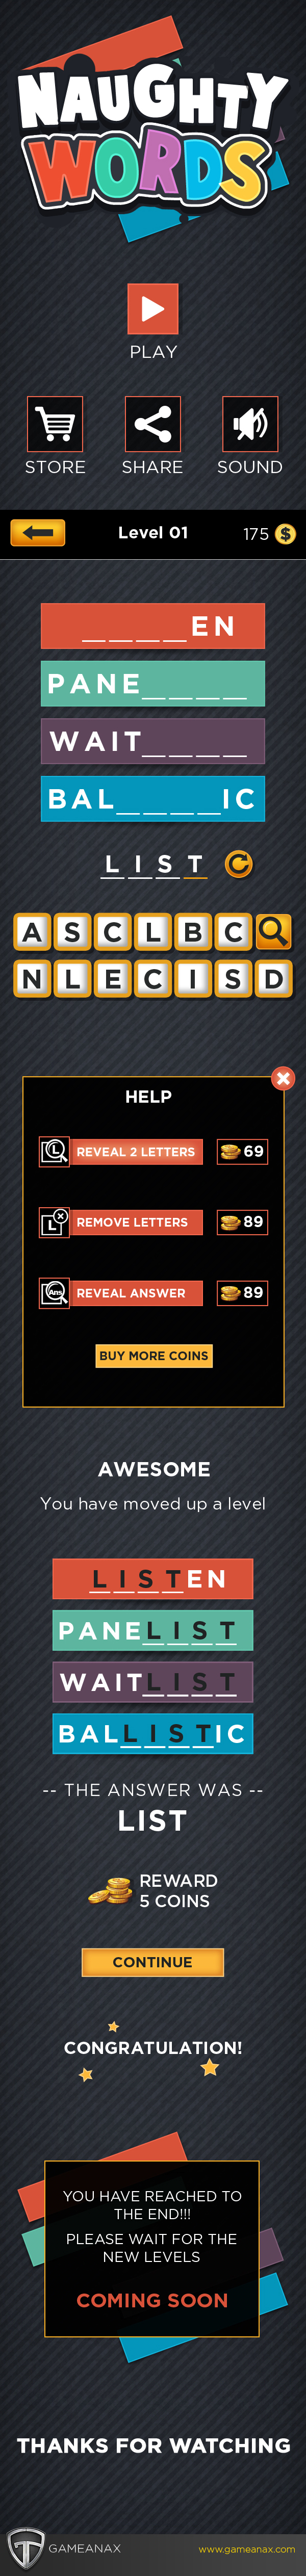 mobile gaming Gaming Games UI ux iphone iPad puzzle word puzzle